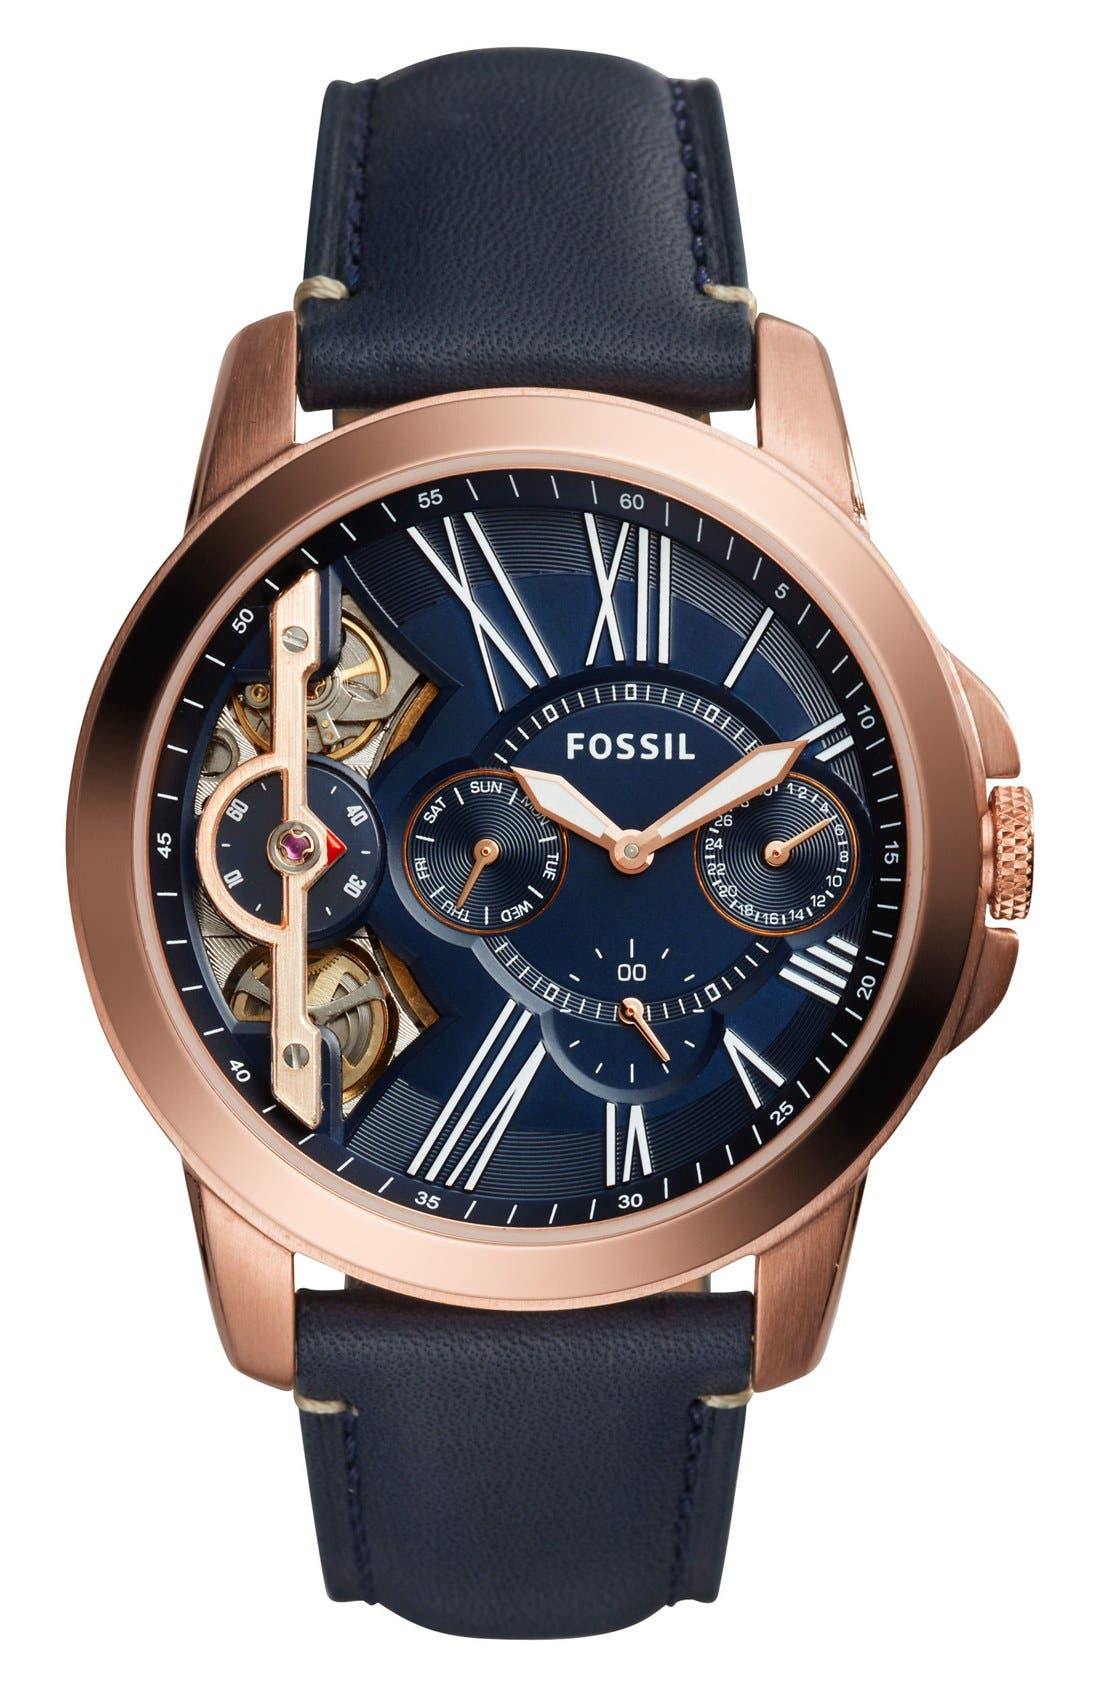 FOSSIL, 'Grant' Chronograph Leather Strap Watch, 44mm, Main thumbnail 1, color, NAVY/ ROSE GOLD